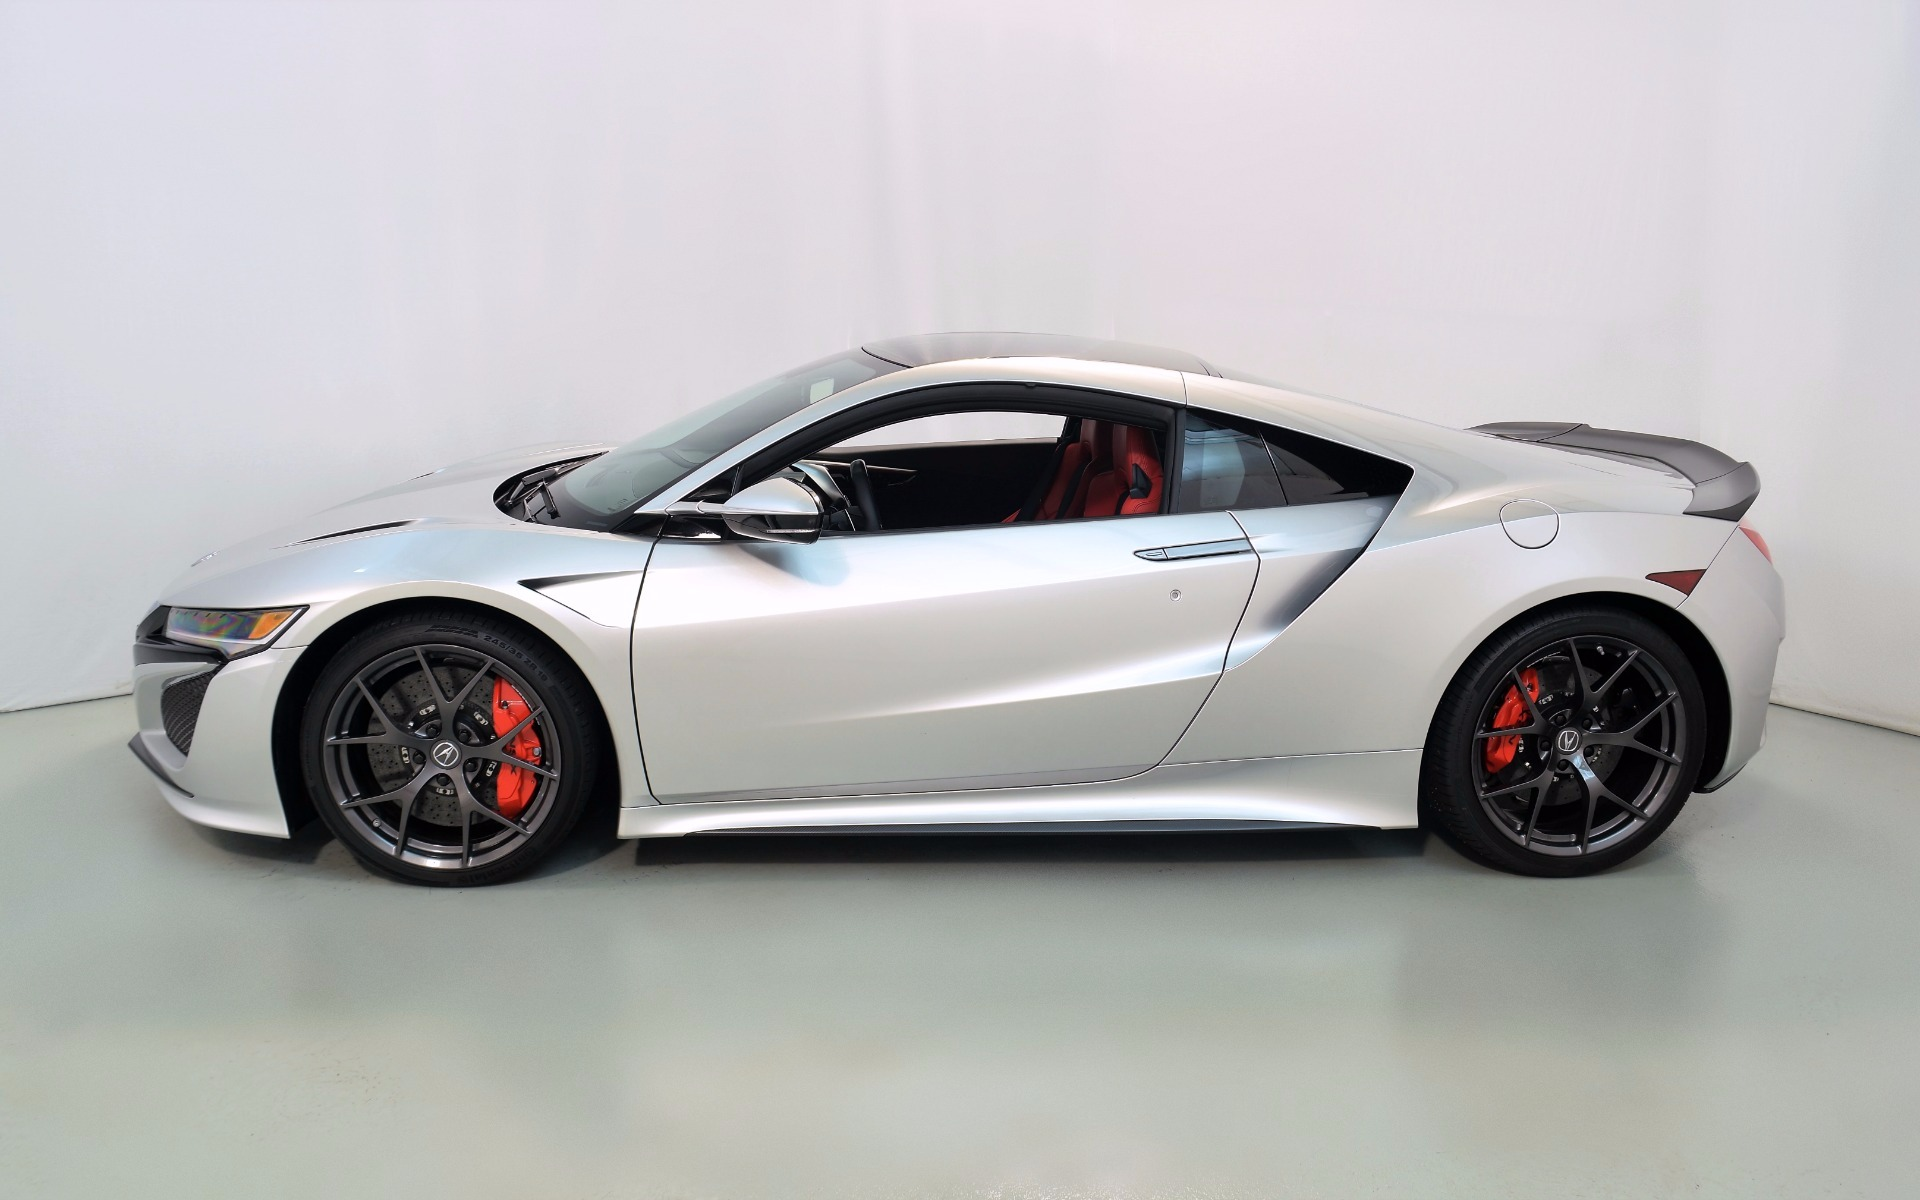 Acura NSX SHAWD Sport Hybrid For Sale In Norwell MA - Sports cars with awd